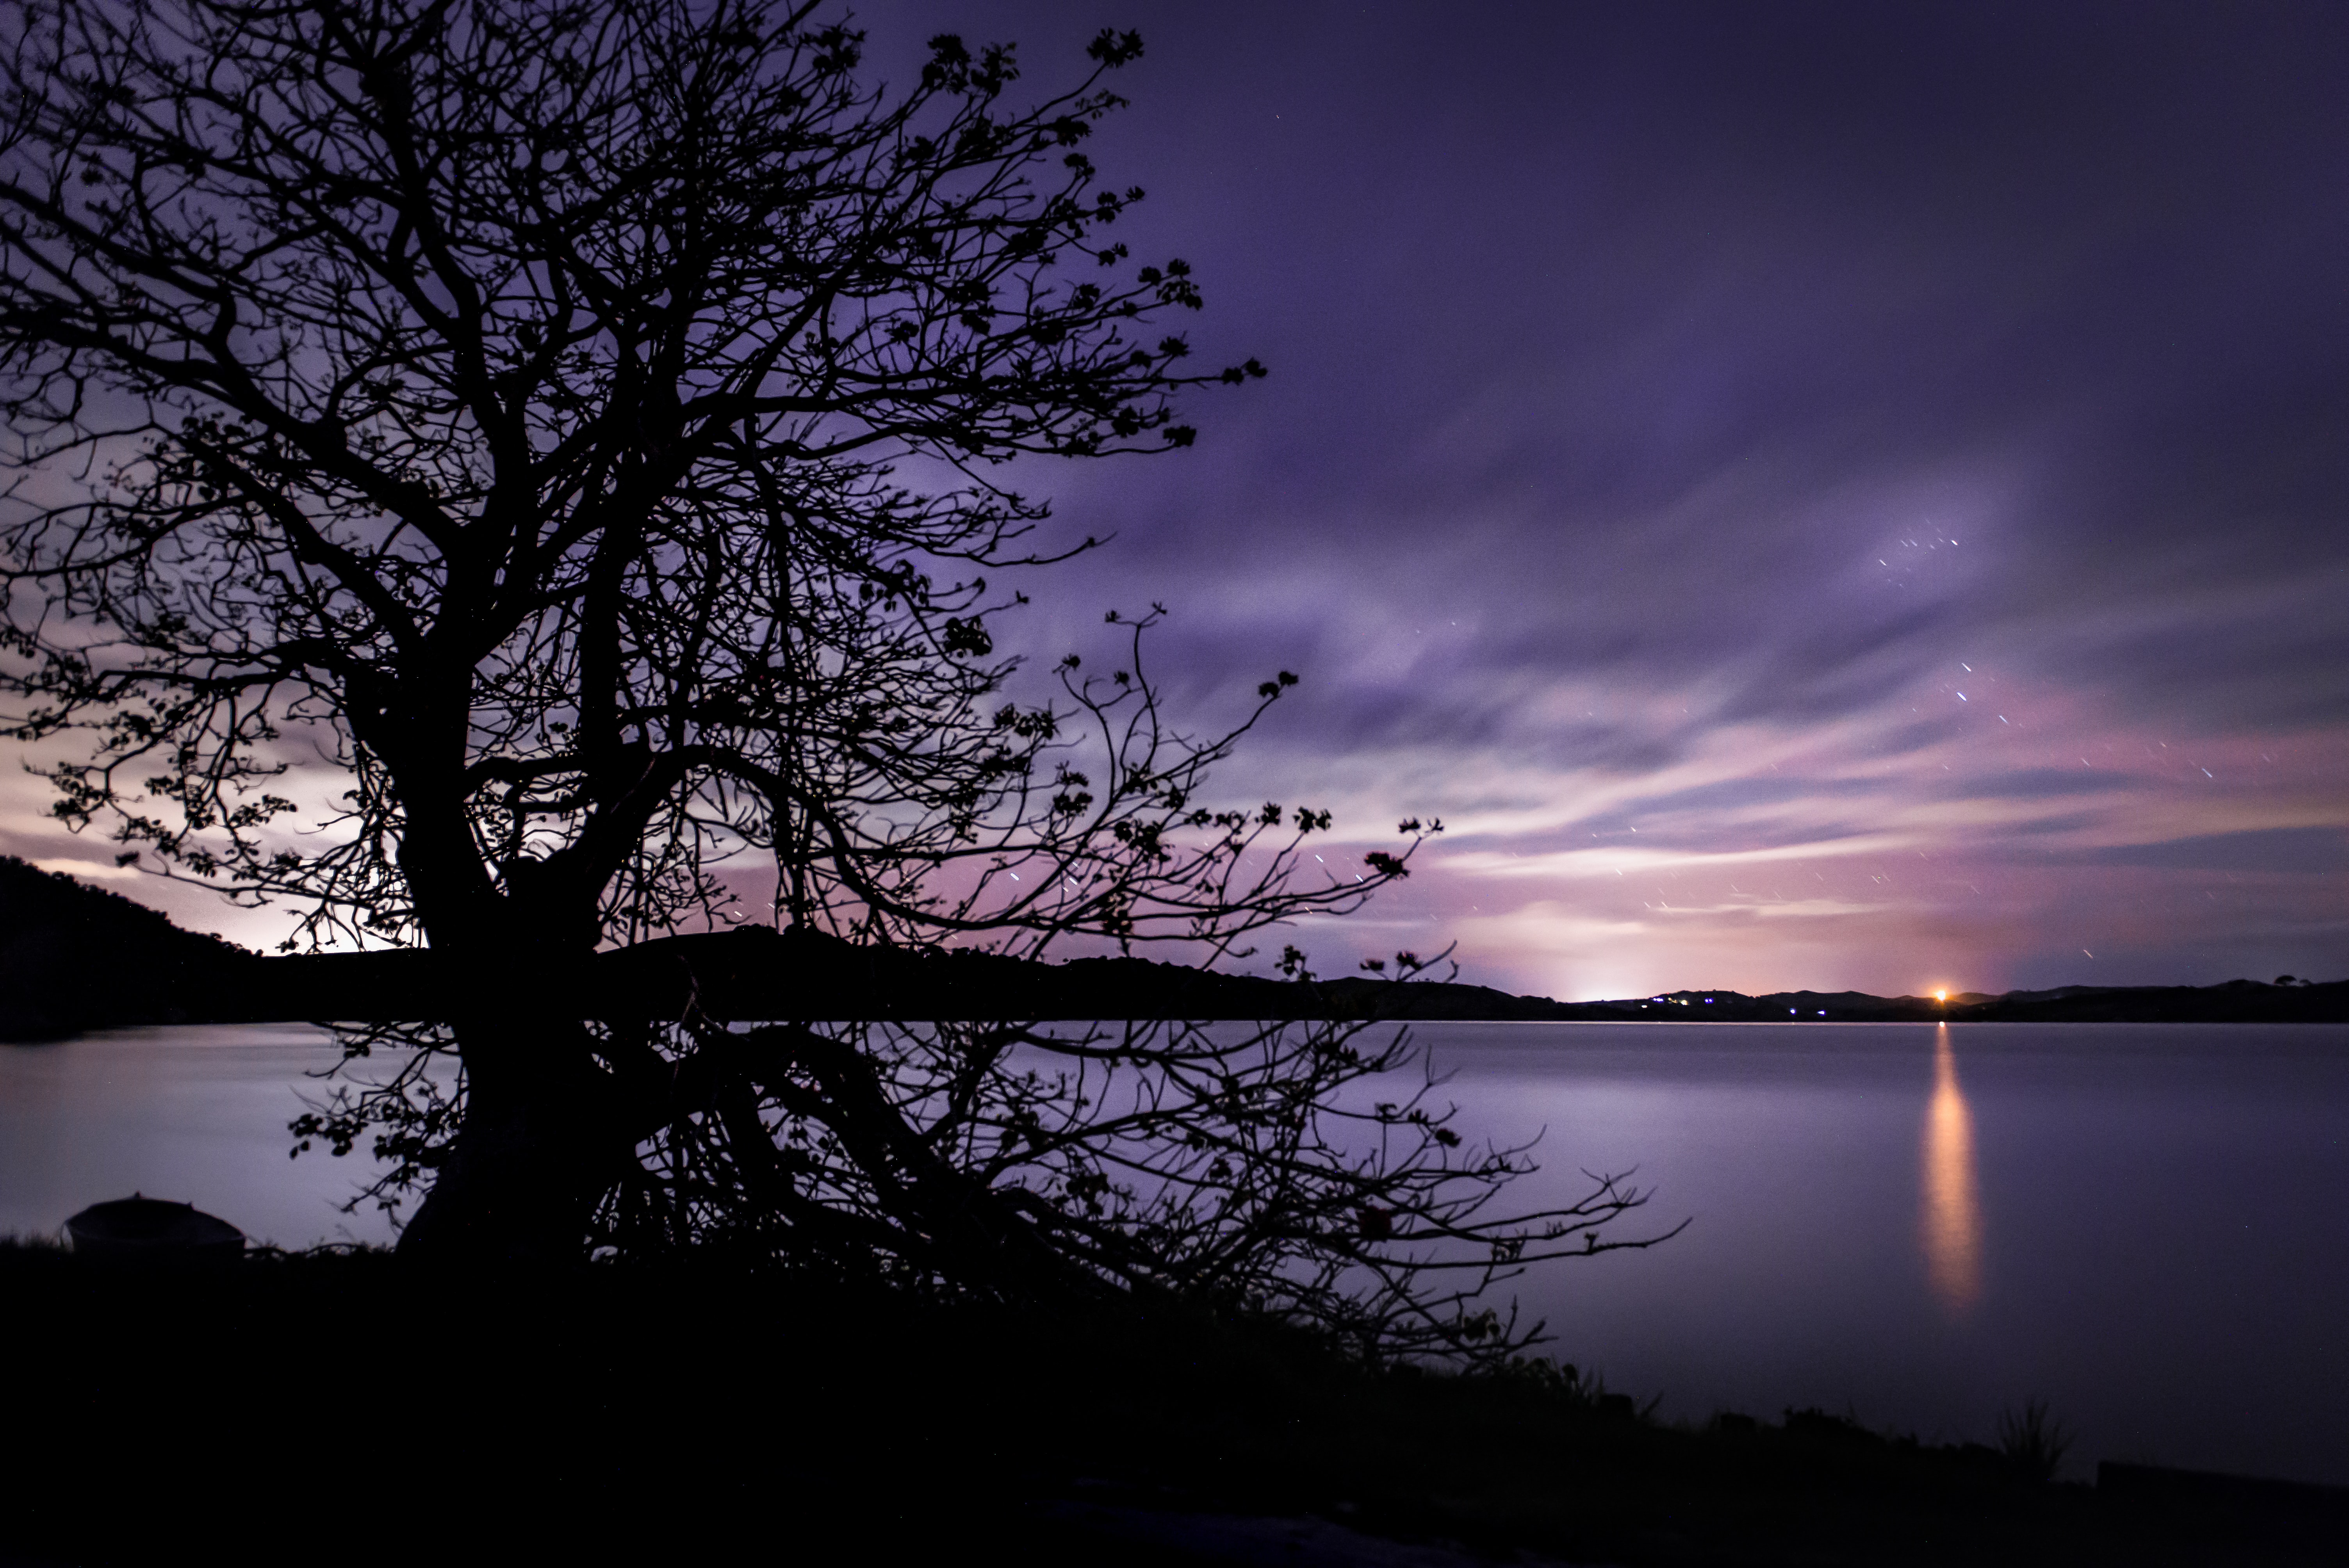 silhouette of bare tree near body of water